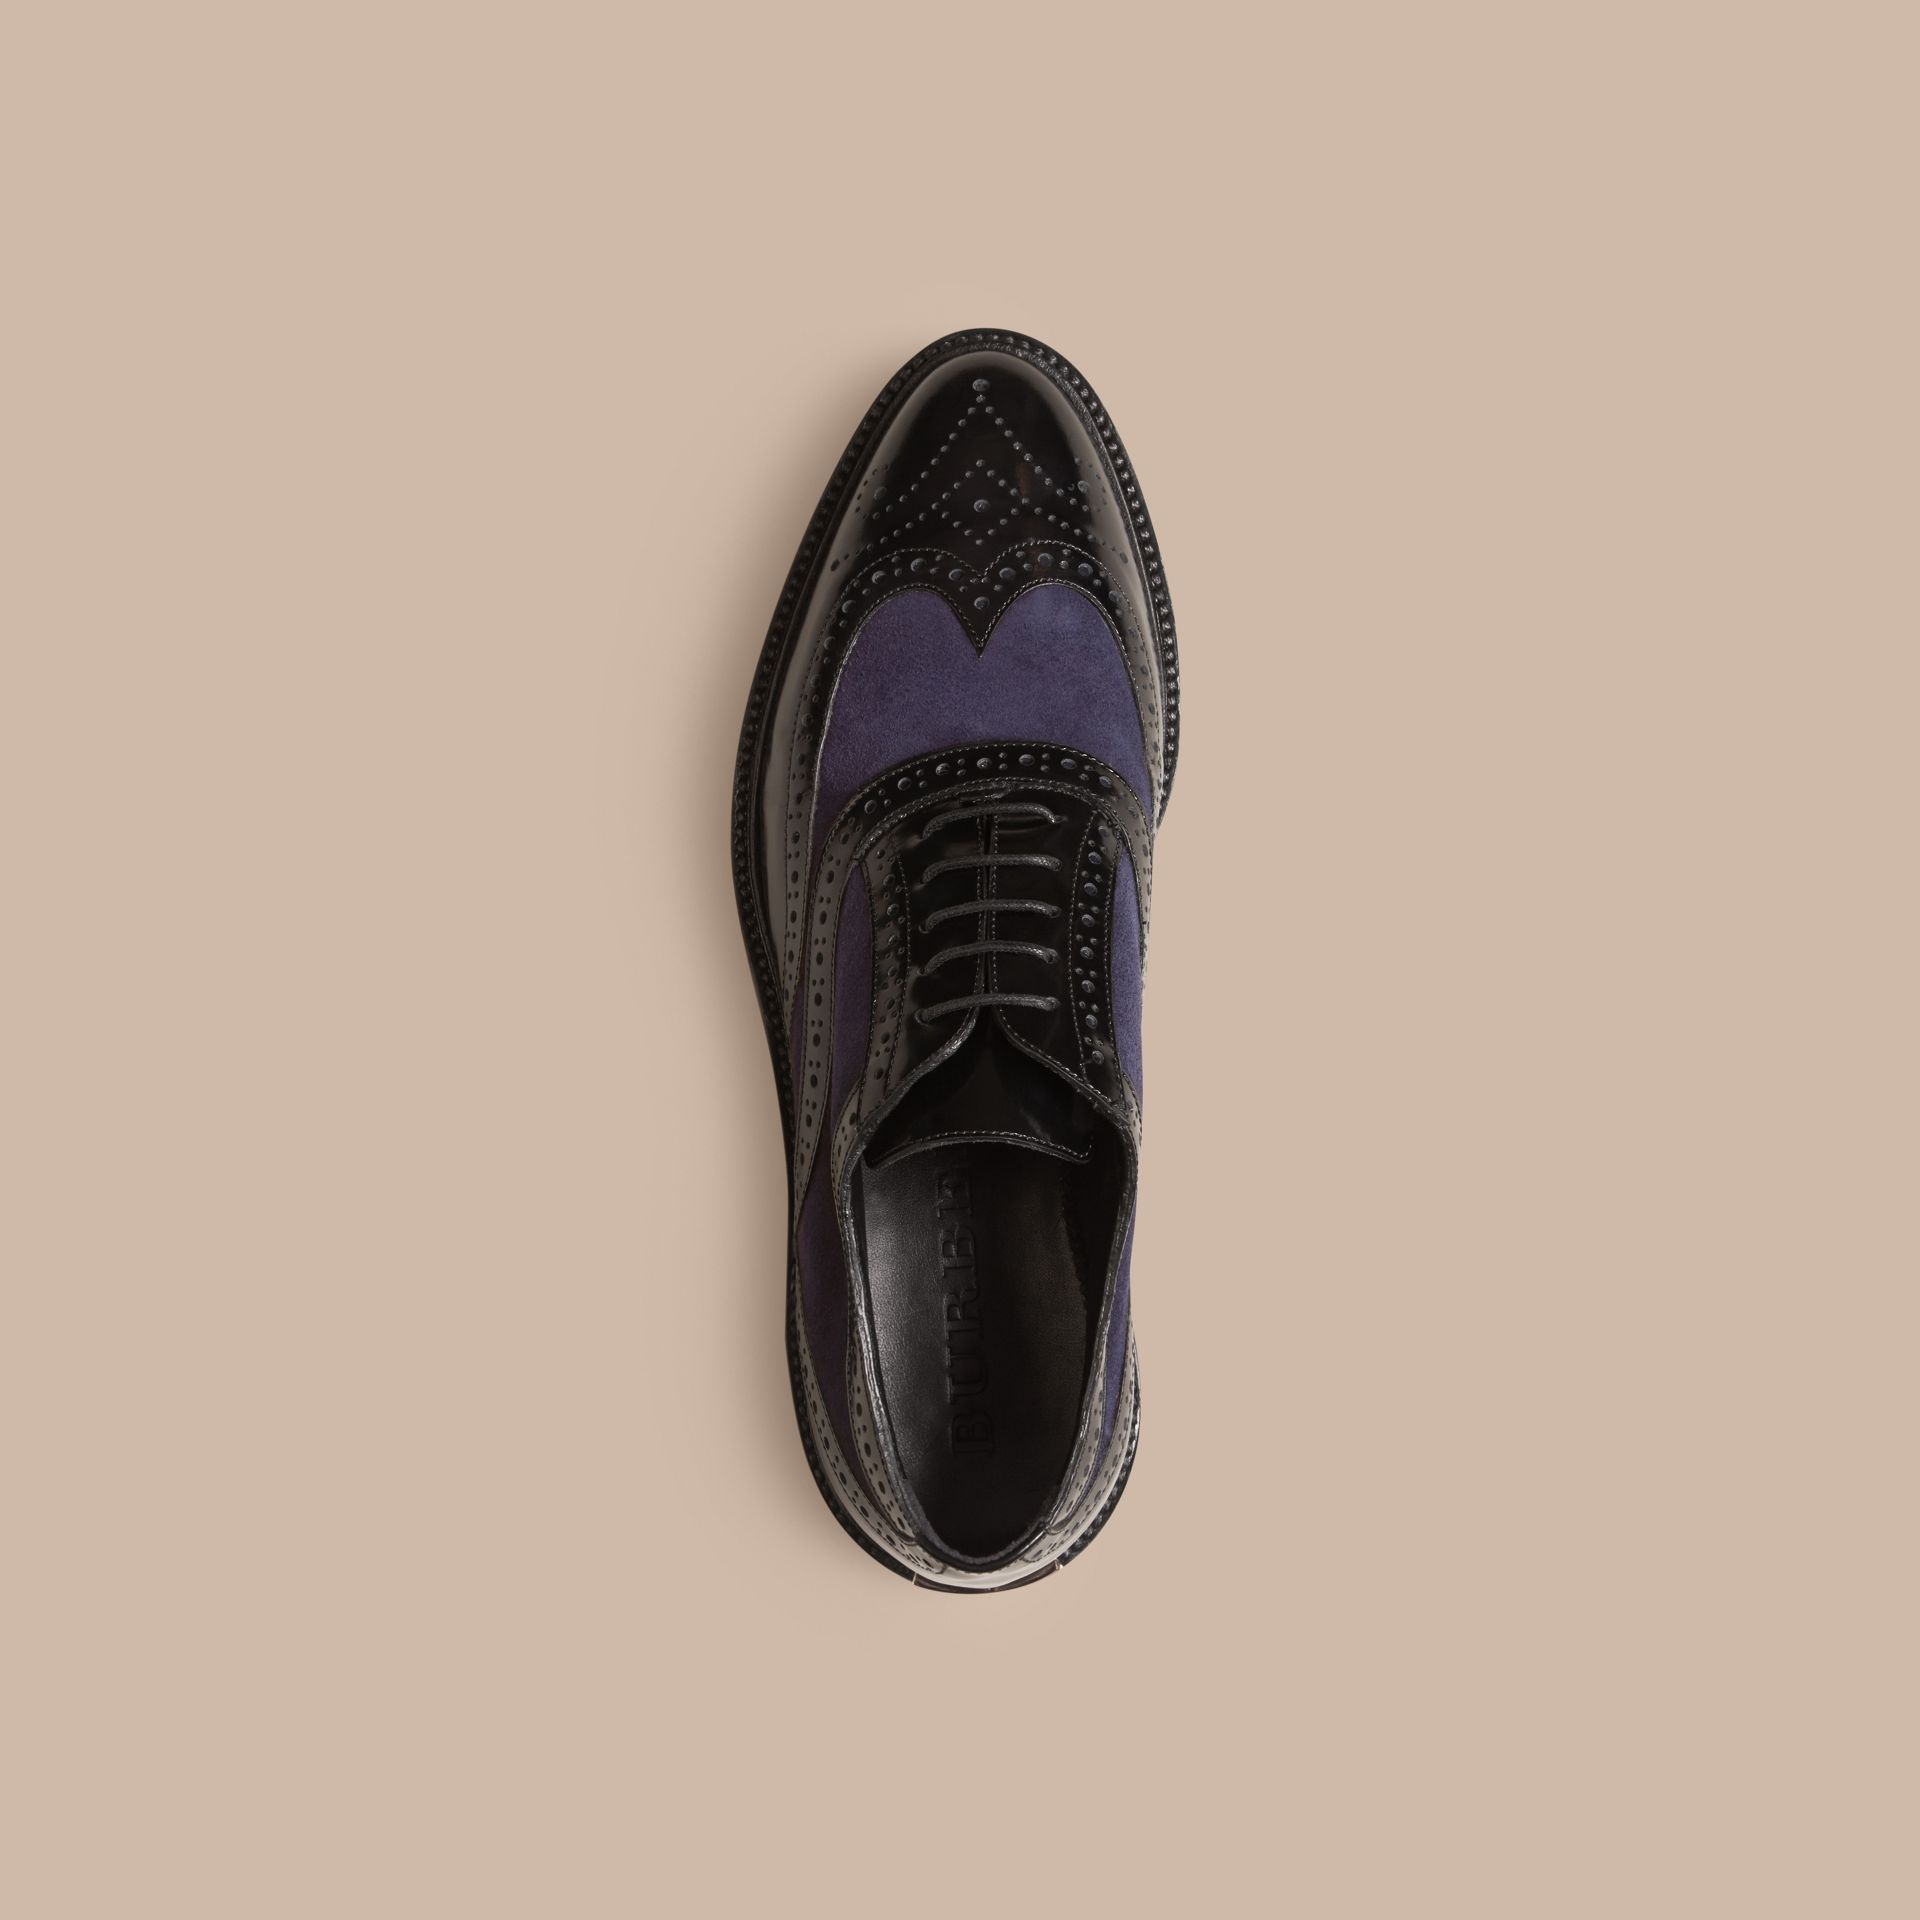 Leather and Suede Wingtip Brogues in Navy - Women | Burberry United States - gallery image 2